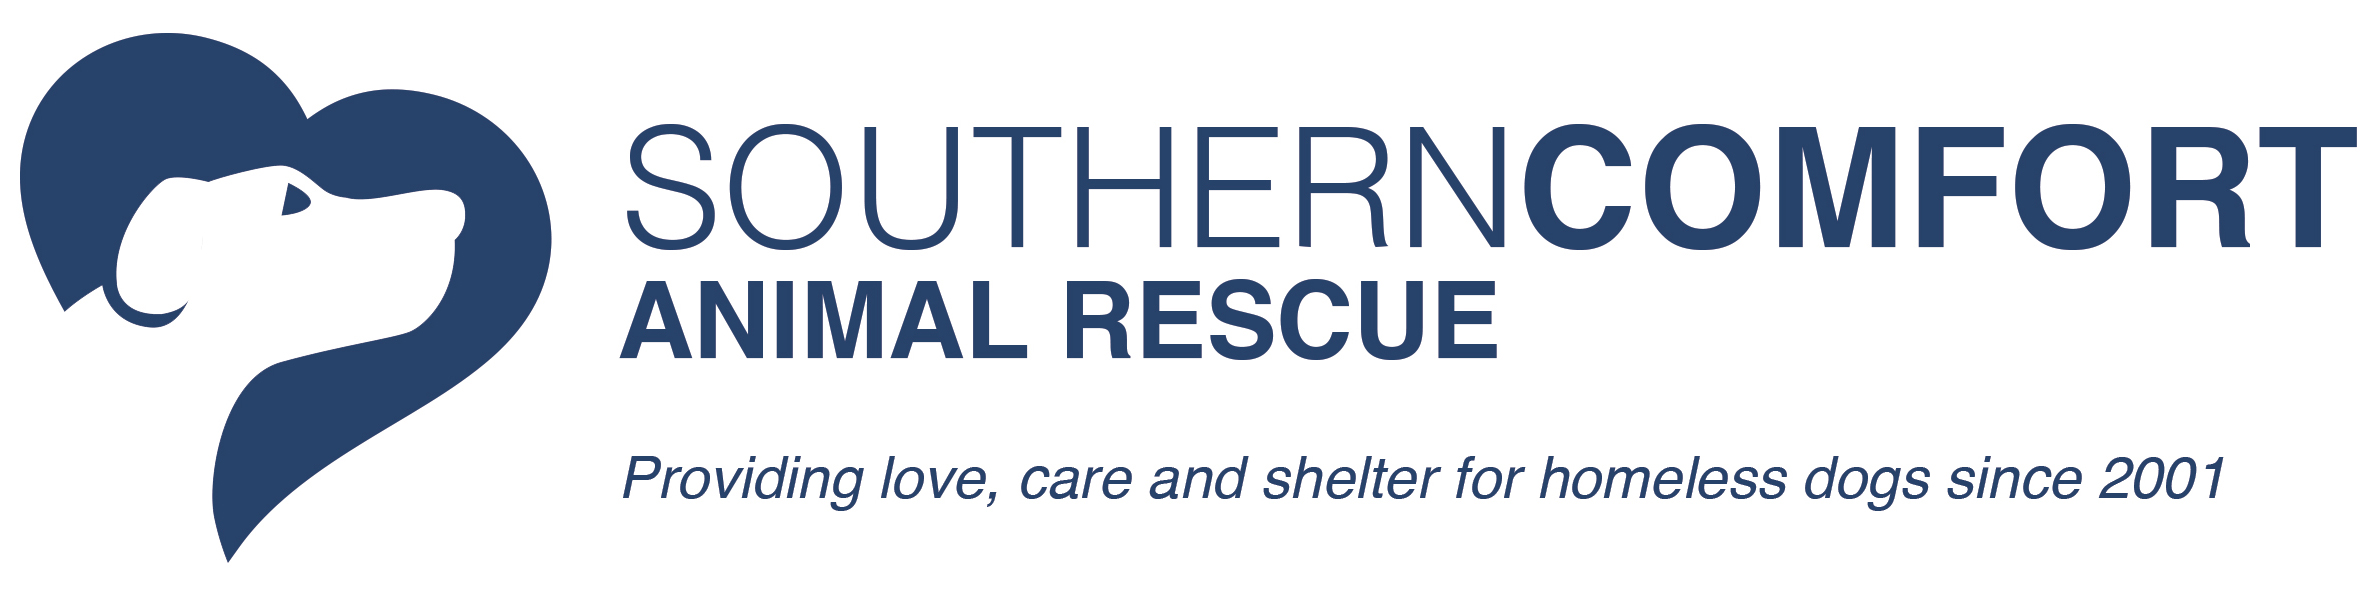 Southern Comfort Animal Rescue Logo